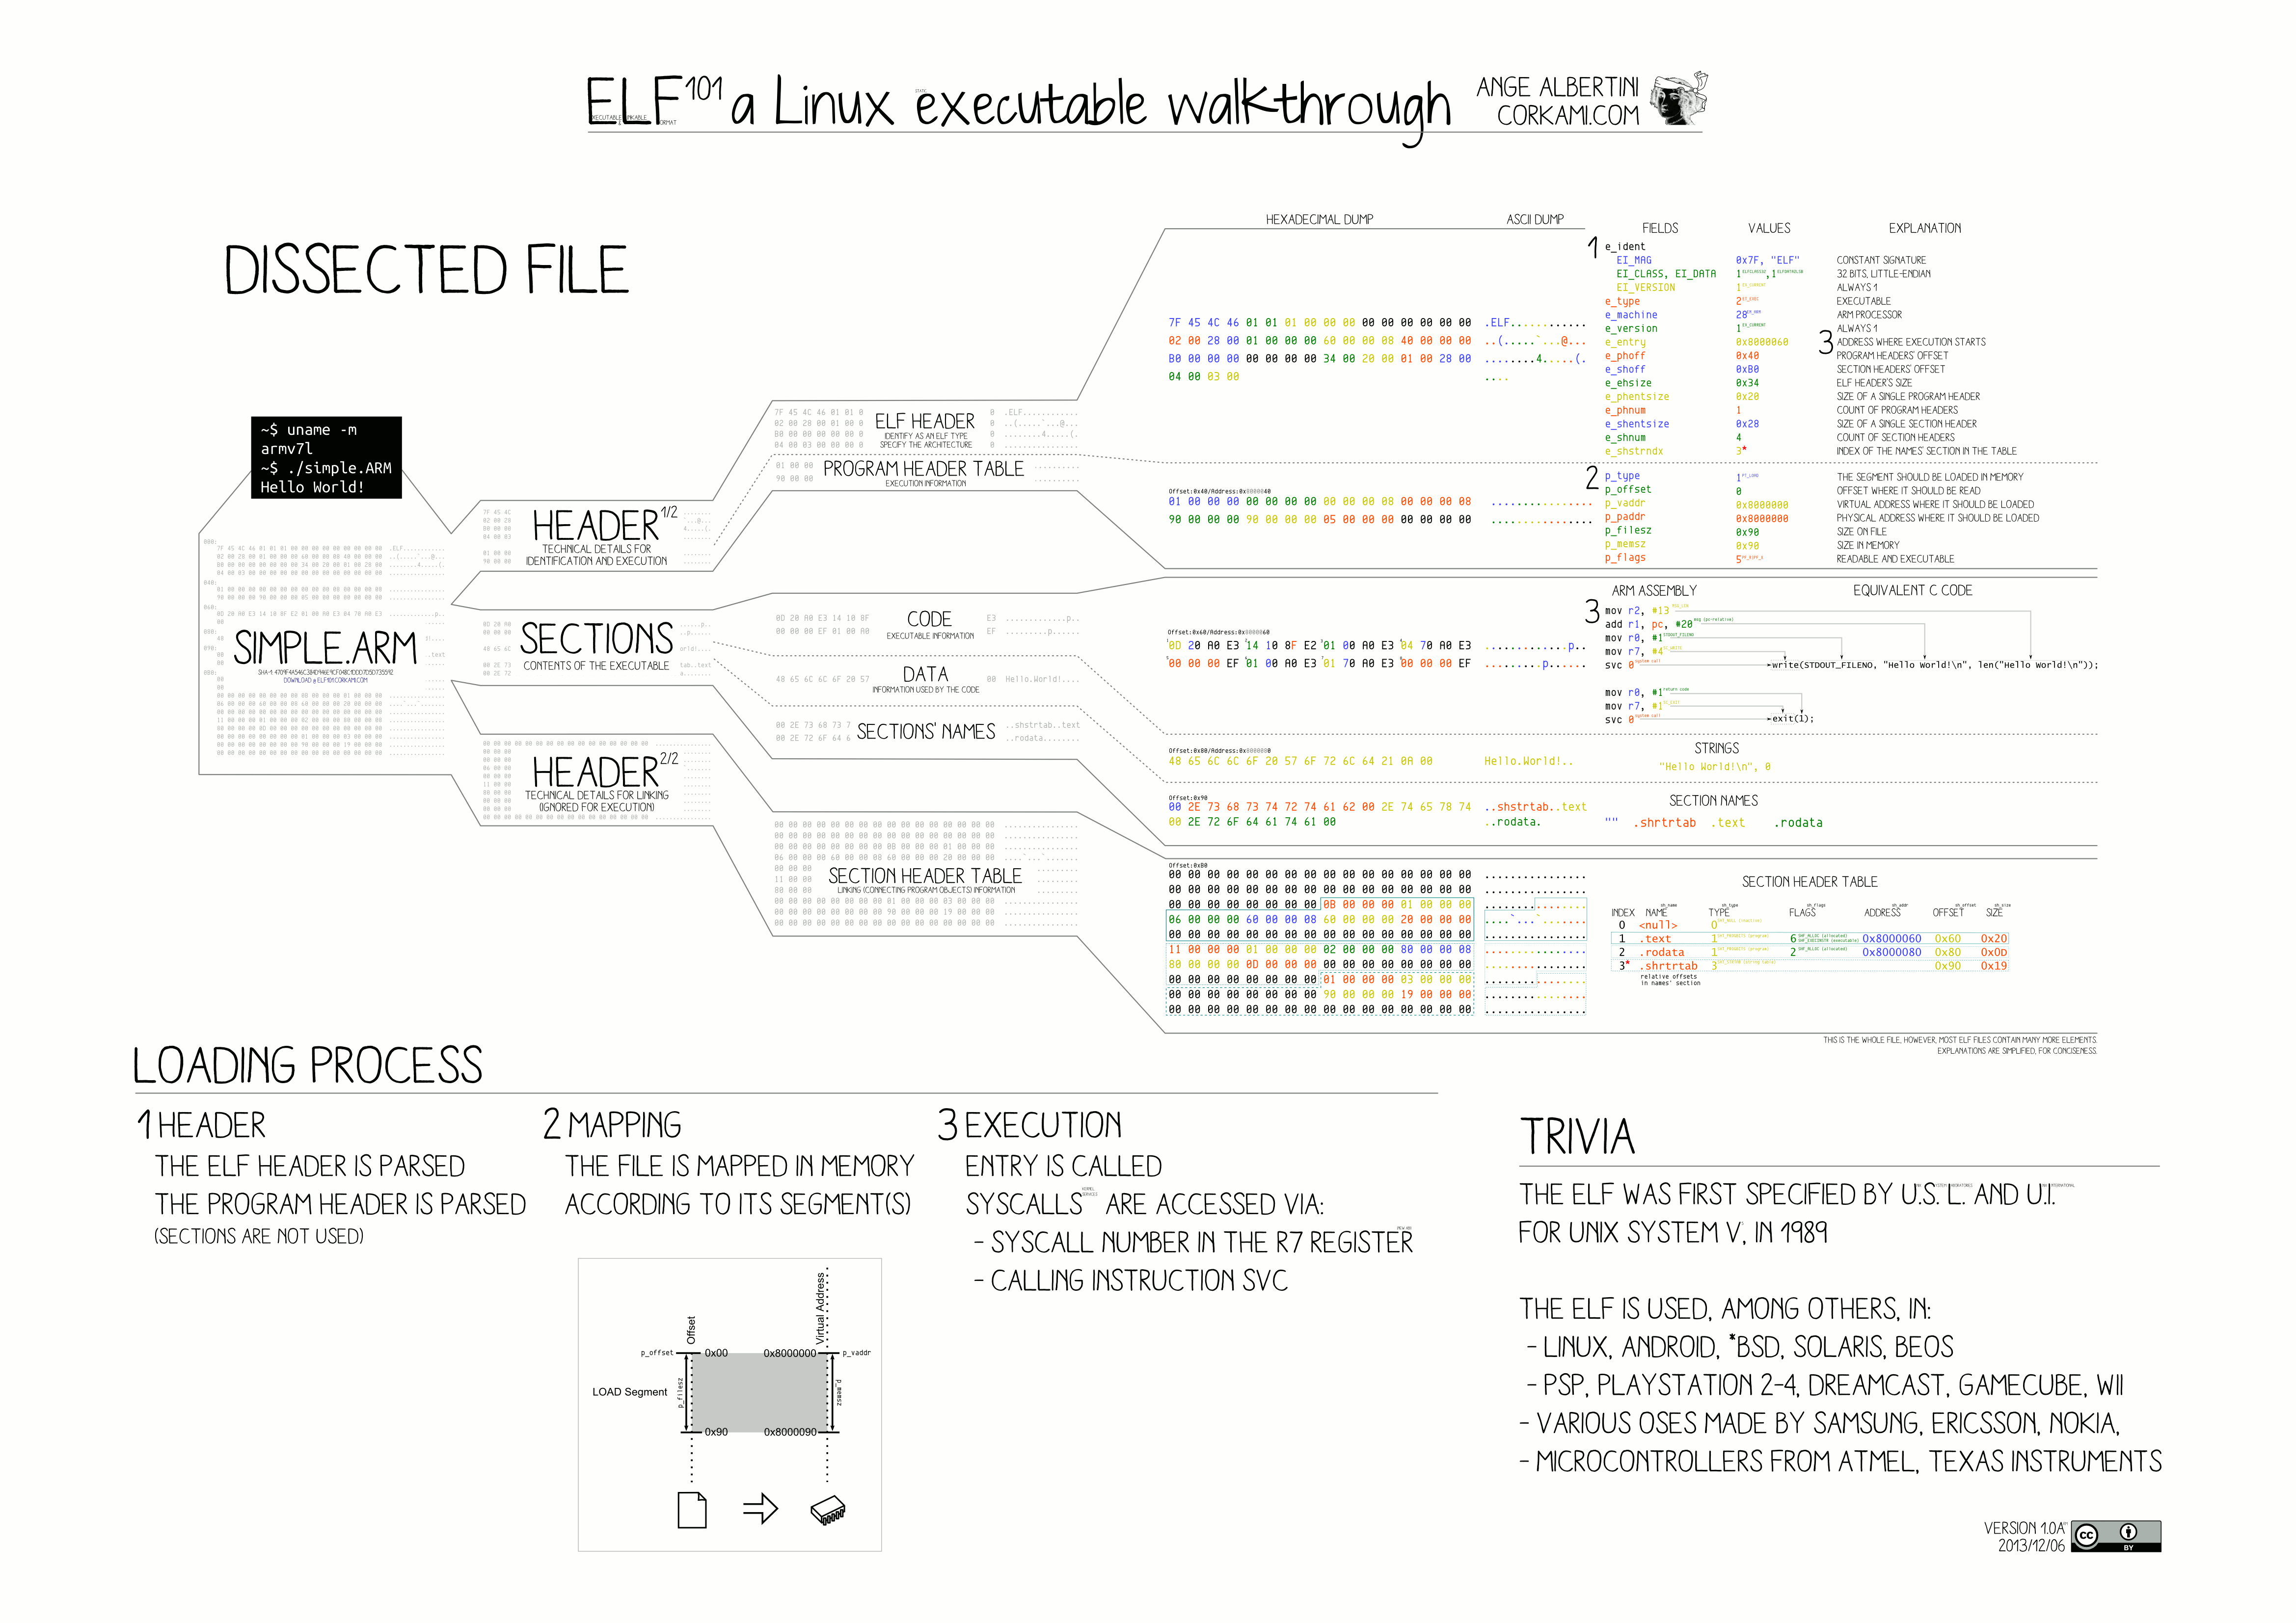 ELF Executable and Linkable Format diagram by Ange Albertini